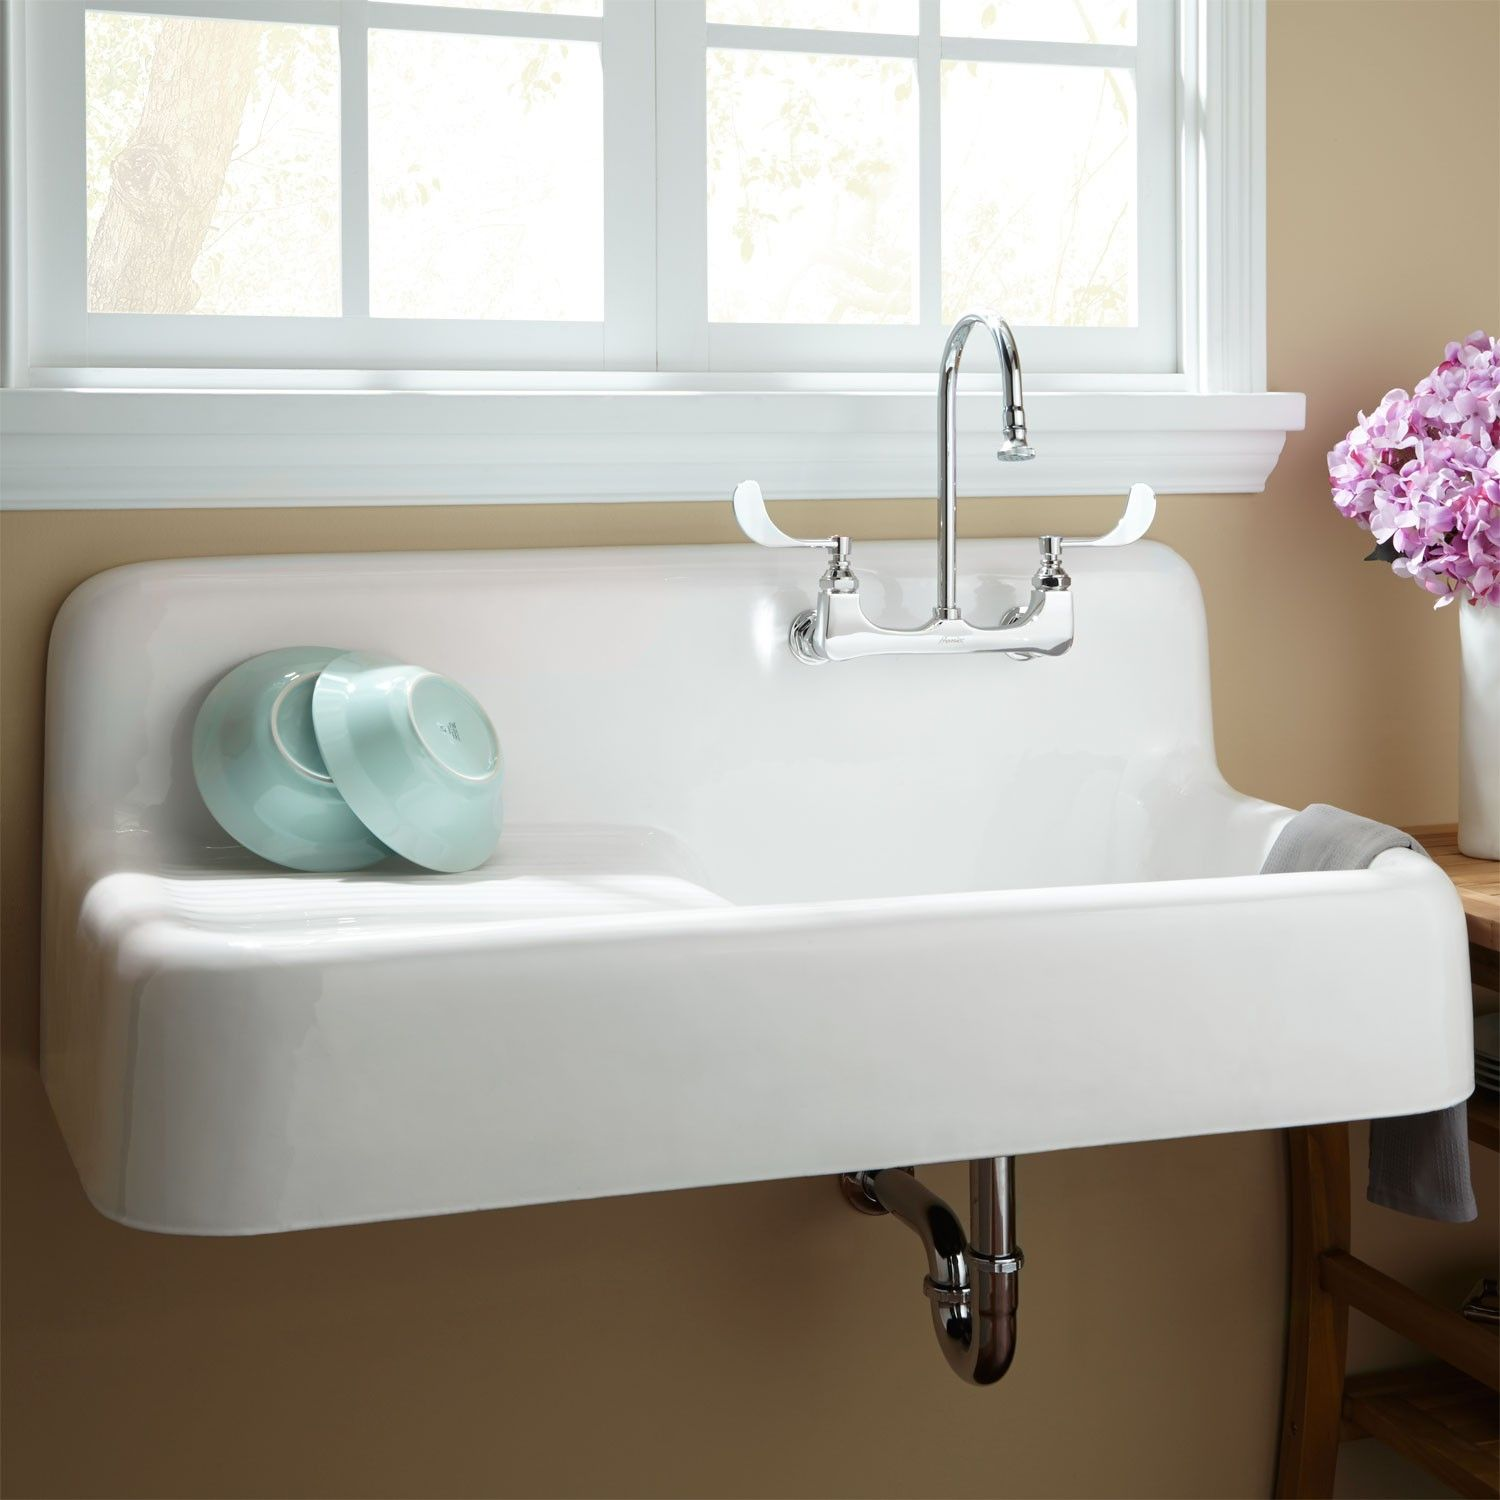 42 Cast Iron Wall Mount Kitchen Sink With Drainboard Cast Iron